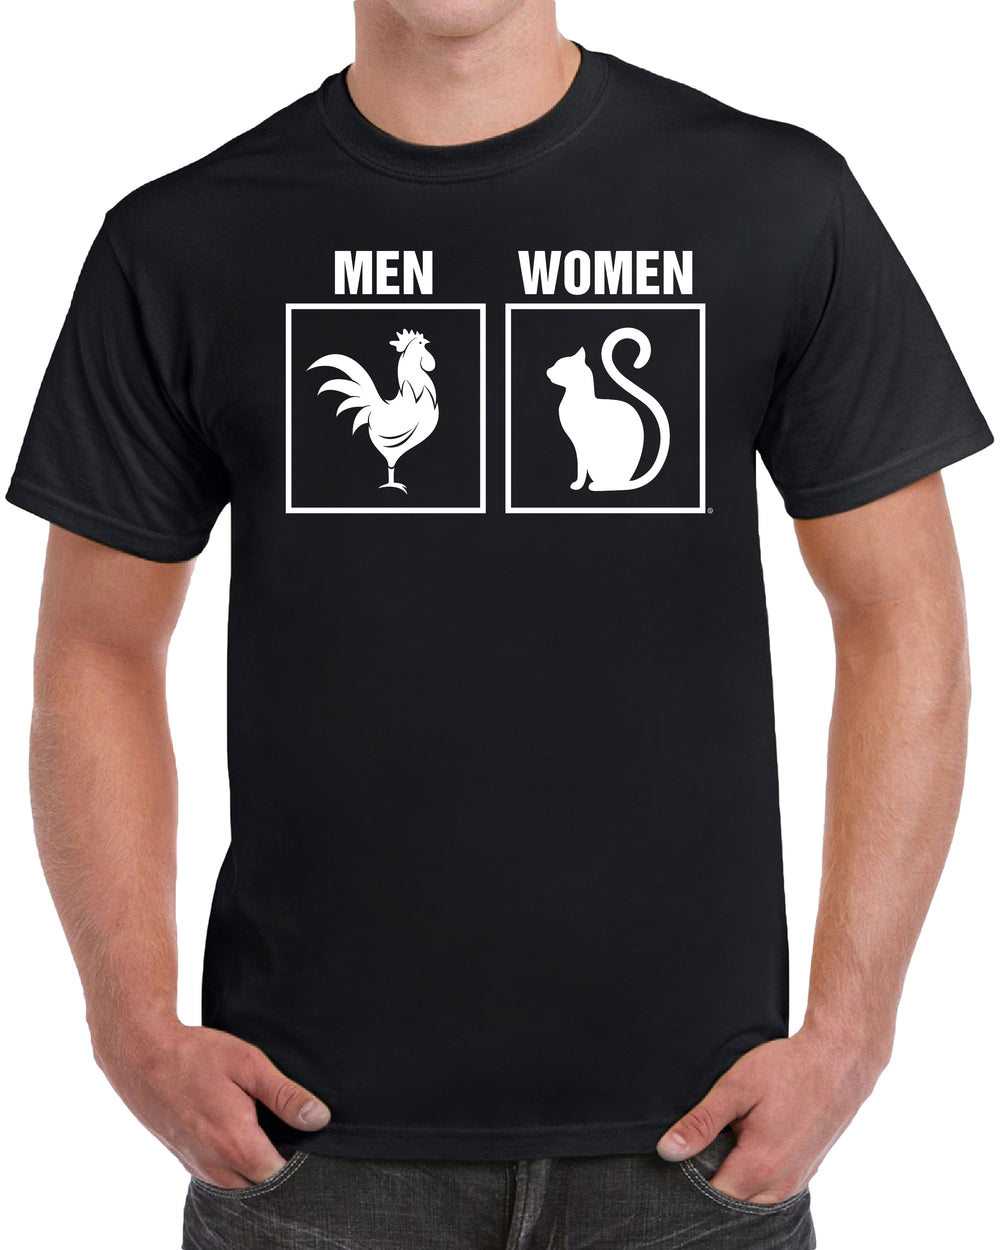 Gender Animal Symbols Men Vs Women - Solid Print